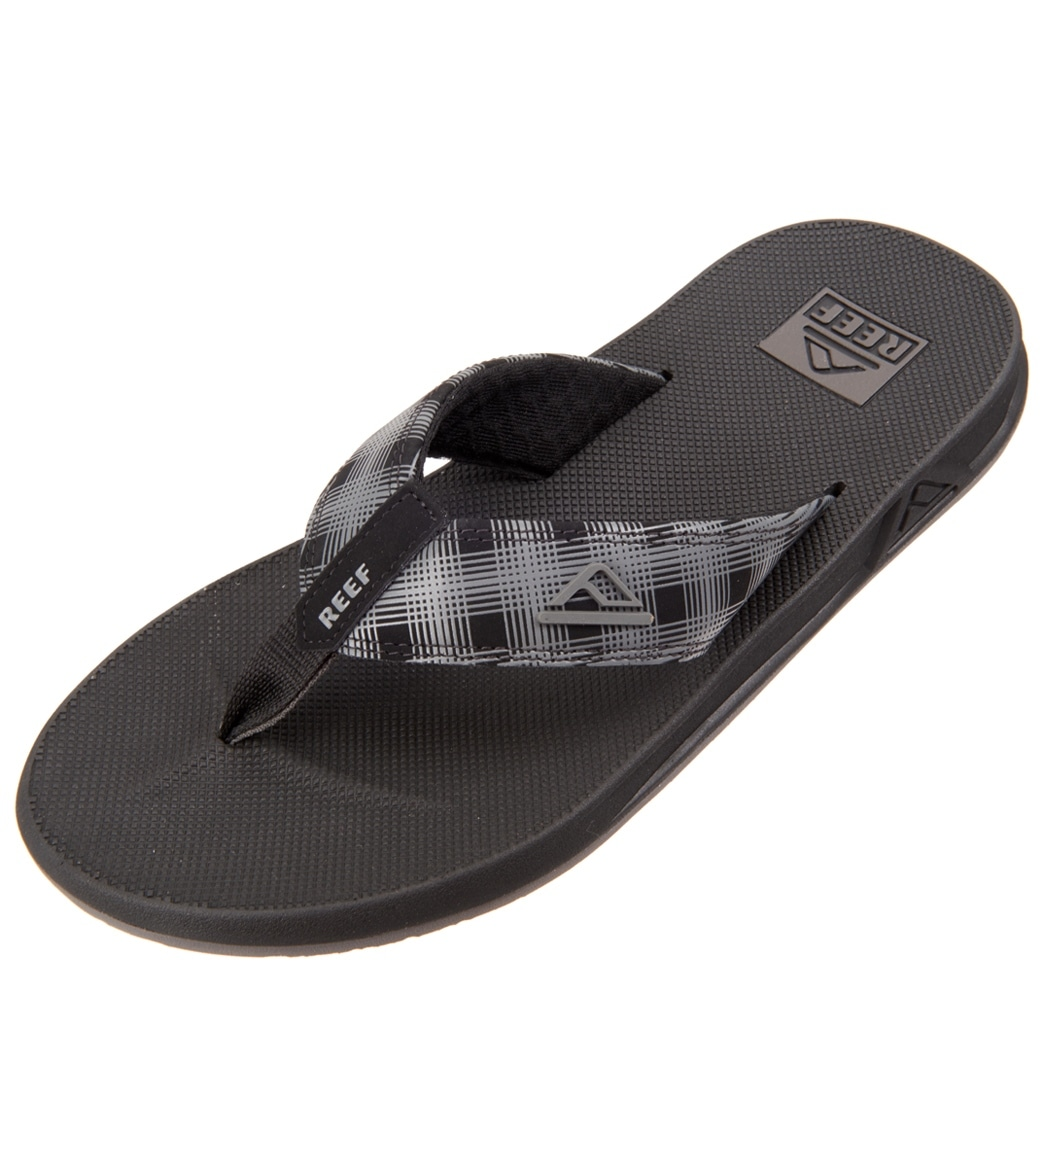 Outlet Shop Offer Eastbay Sale Online Mens Fanning Prints Black Plaid 4 Flip Flops Reef Discount Professional Outlet Wholesale Price Amazing Price Online X9TNbHdcrN